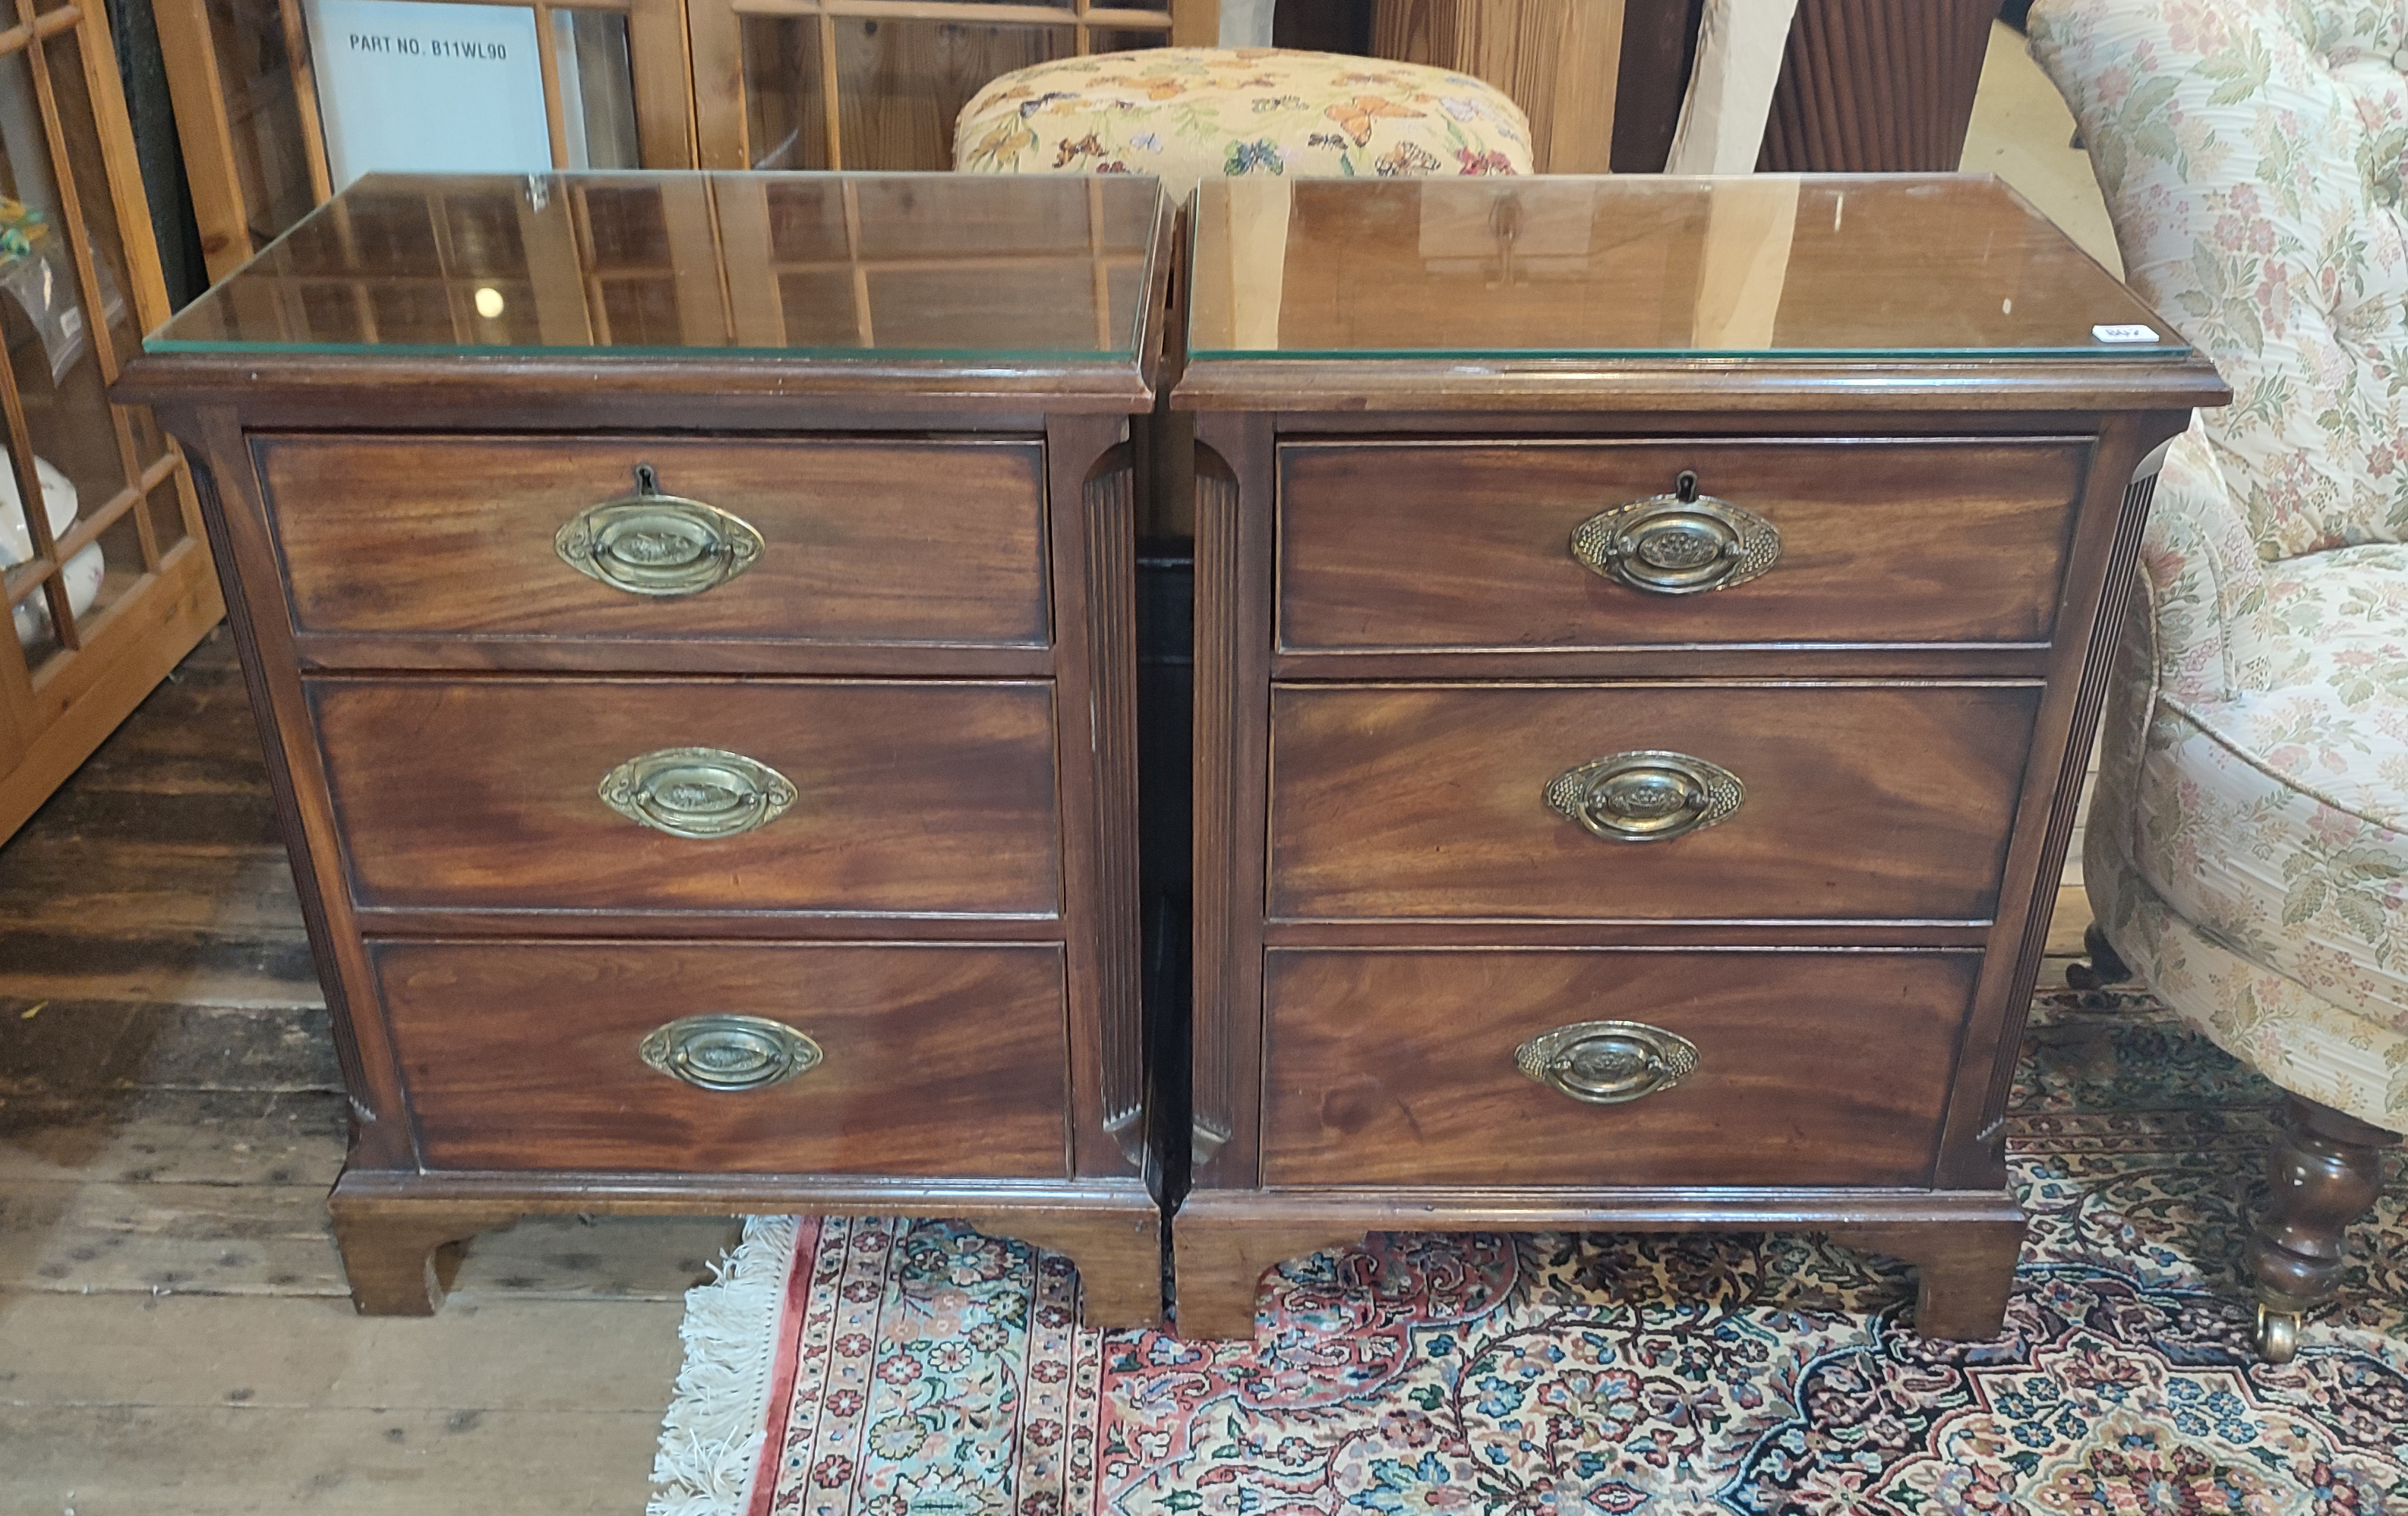 A PAIR OF 19TH CENTURY MAHOGANY PEDESTAL CHESTS Three rolls fitted with brass furniture flanked by